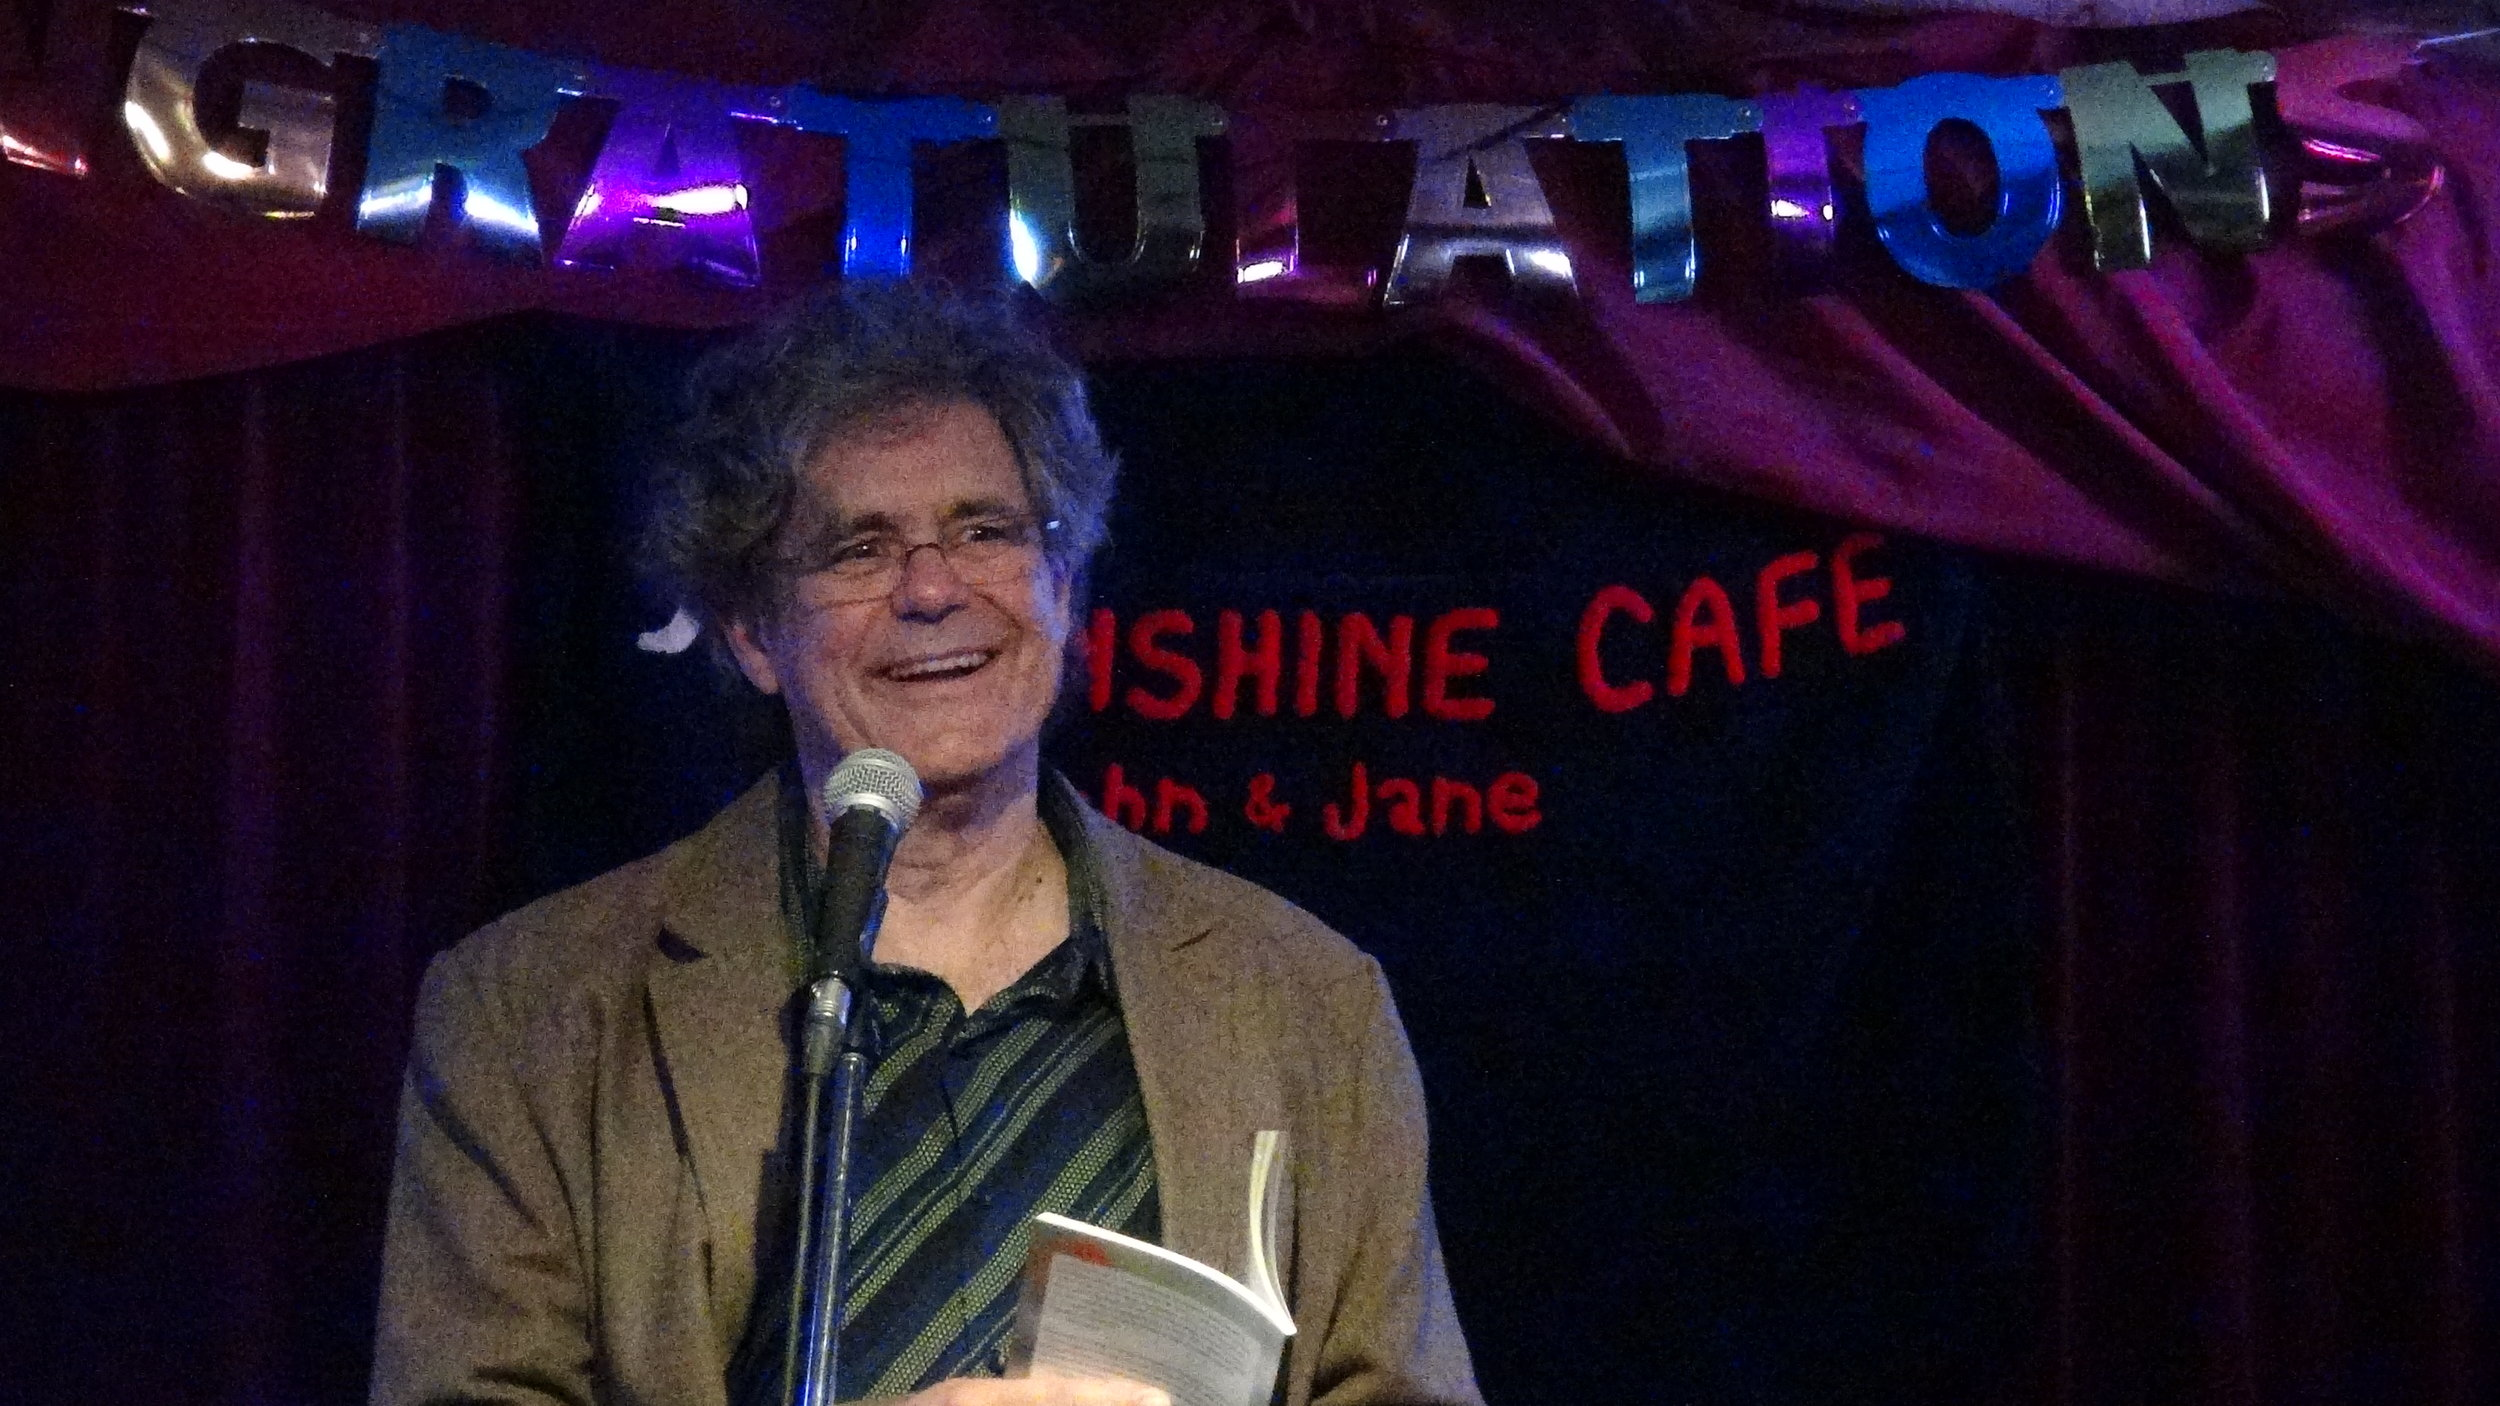 Scholar, writer and prolific poet  Laurence Hutchman  reads from his latest non-fiction poetry collection  Two Maps of Emery (Black Moss Press).  This August Laurence was given the honour of being named Poet Laureate of Emery (formally the Weston Rd area of Toronto).